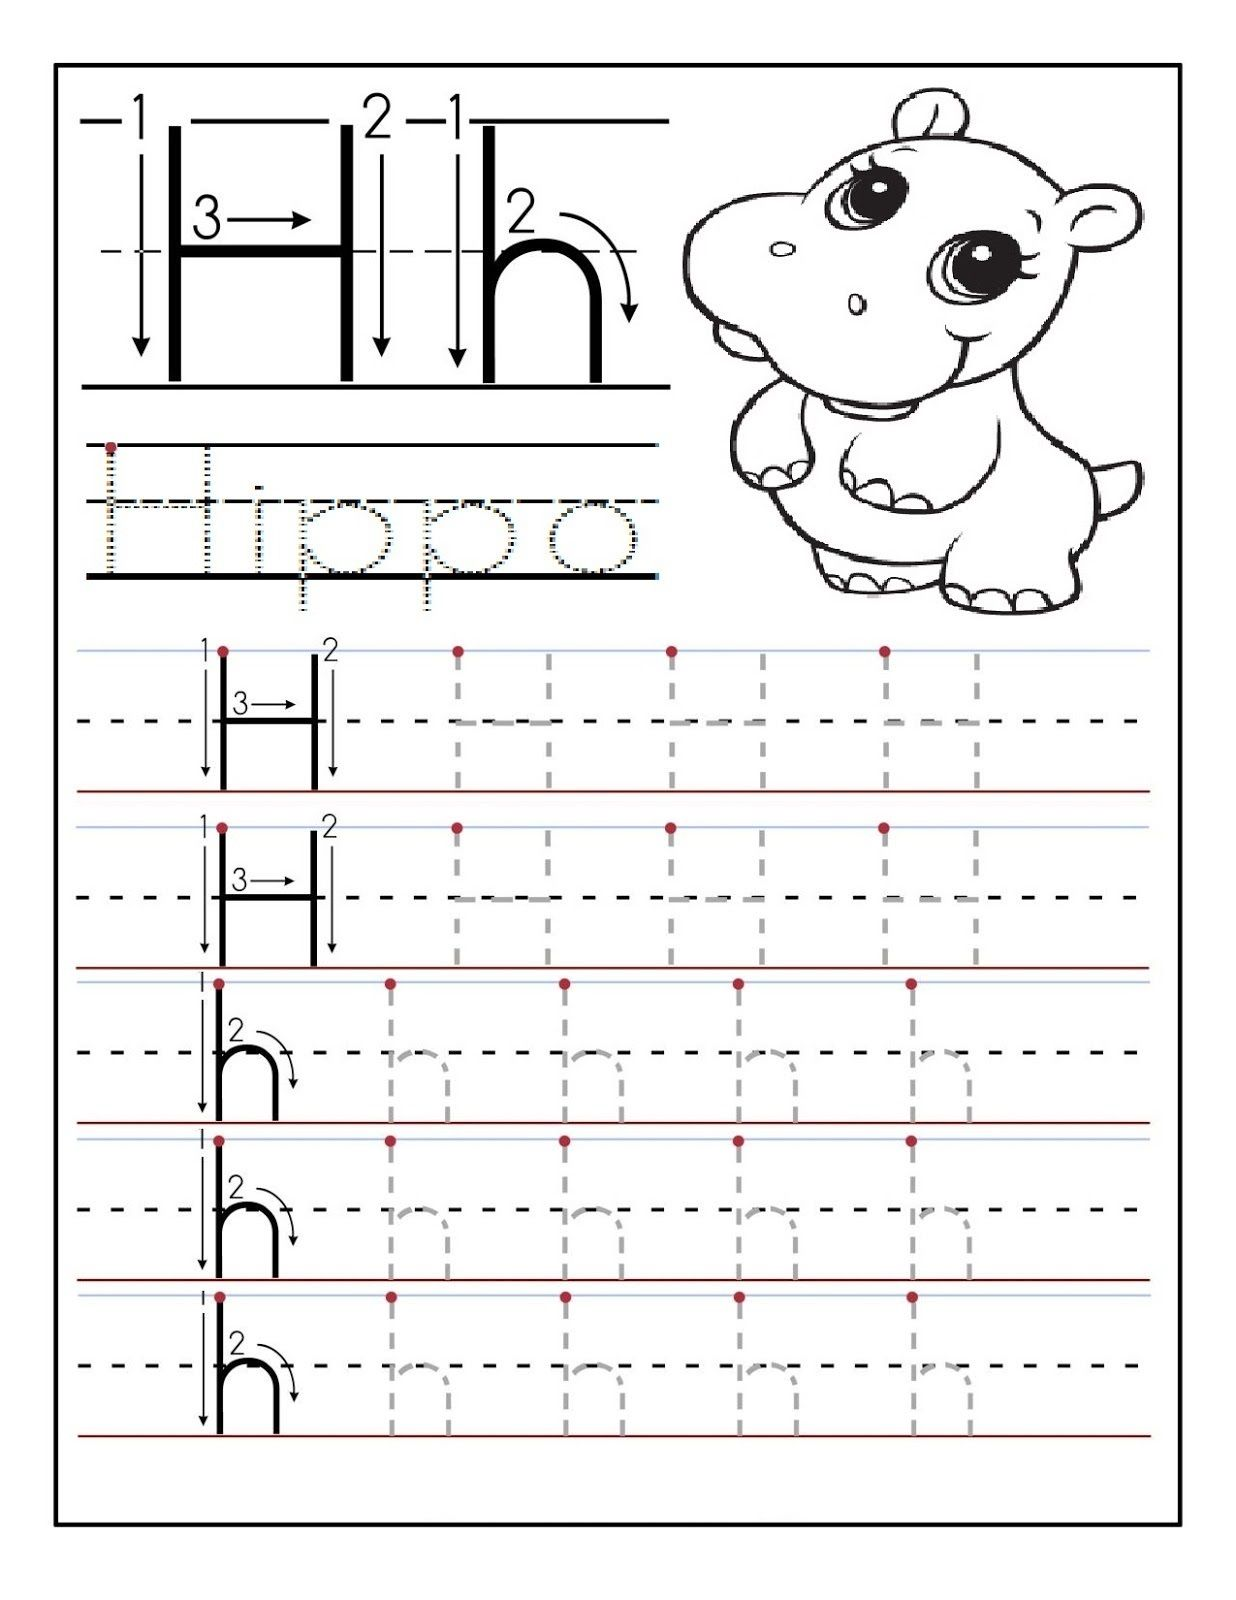 preschool printable activities hippo learning printable alphabet and numbers learning. Black Bedroom Furniture Sets. Home Design Ideas